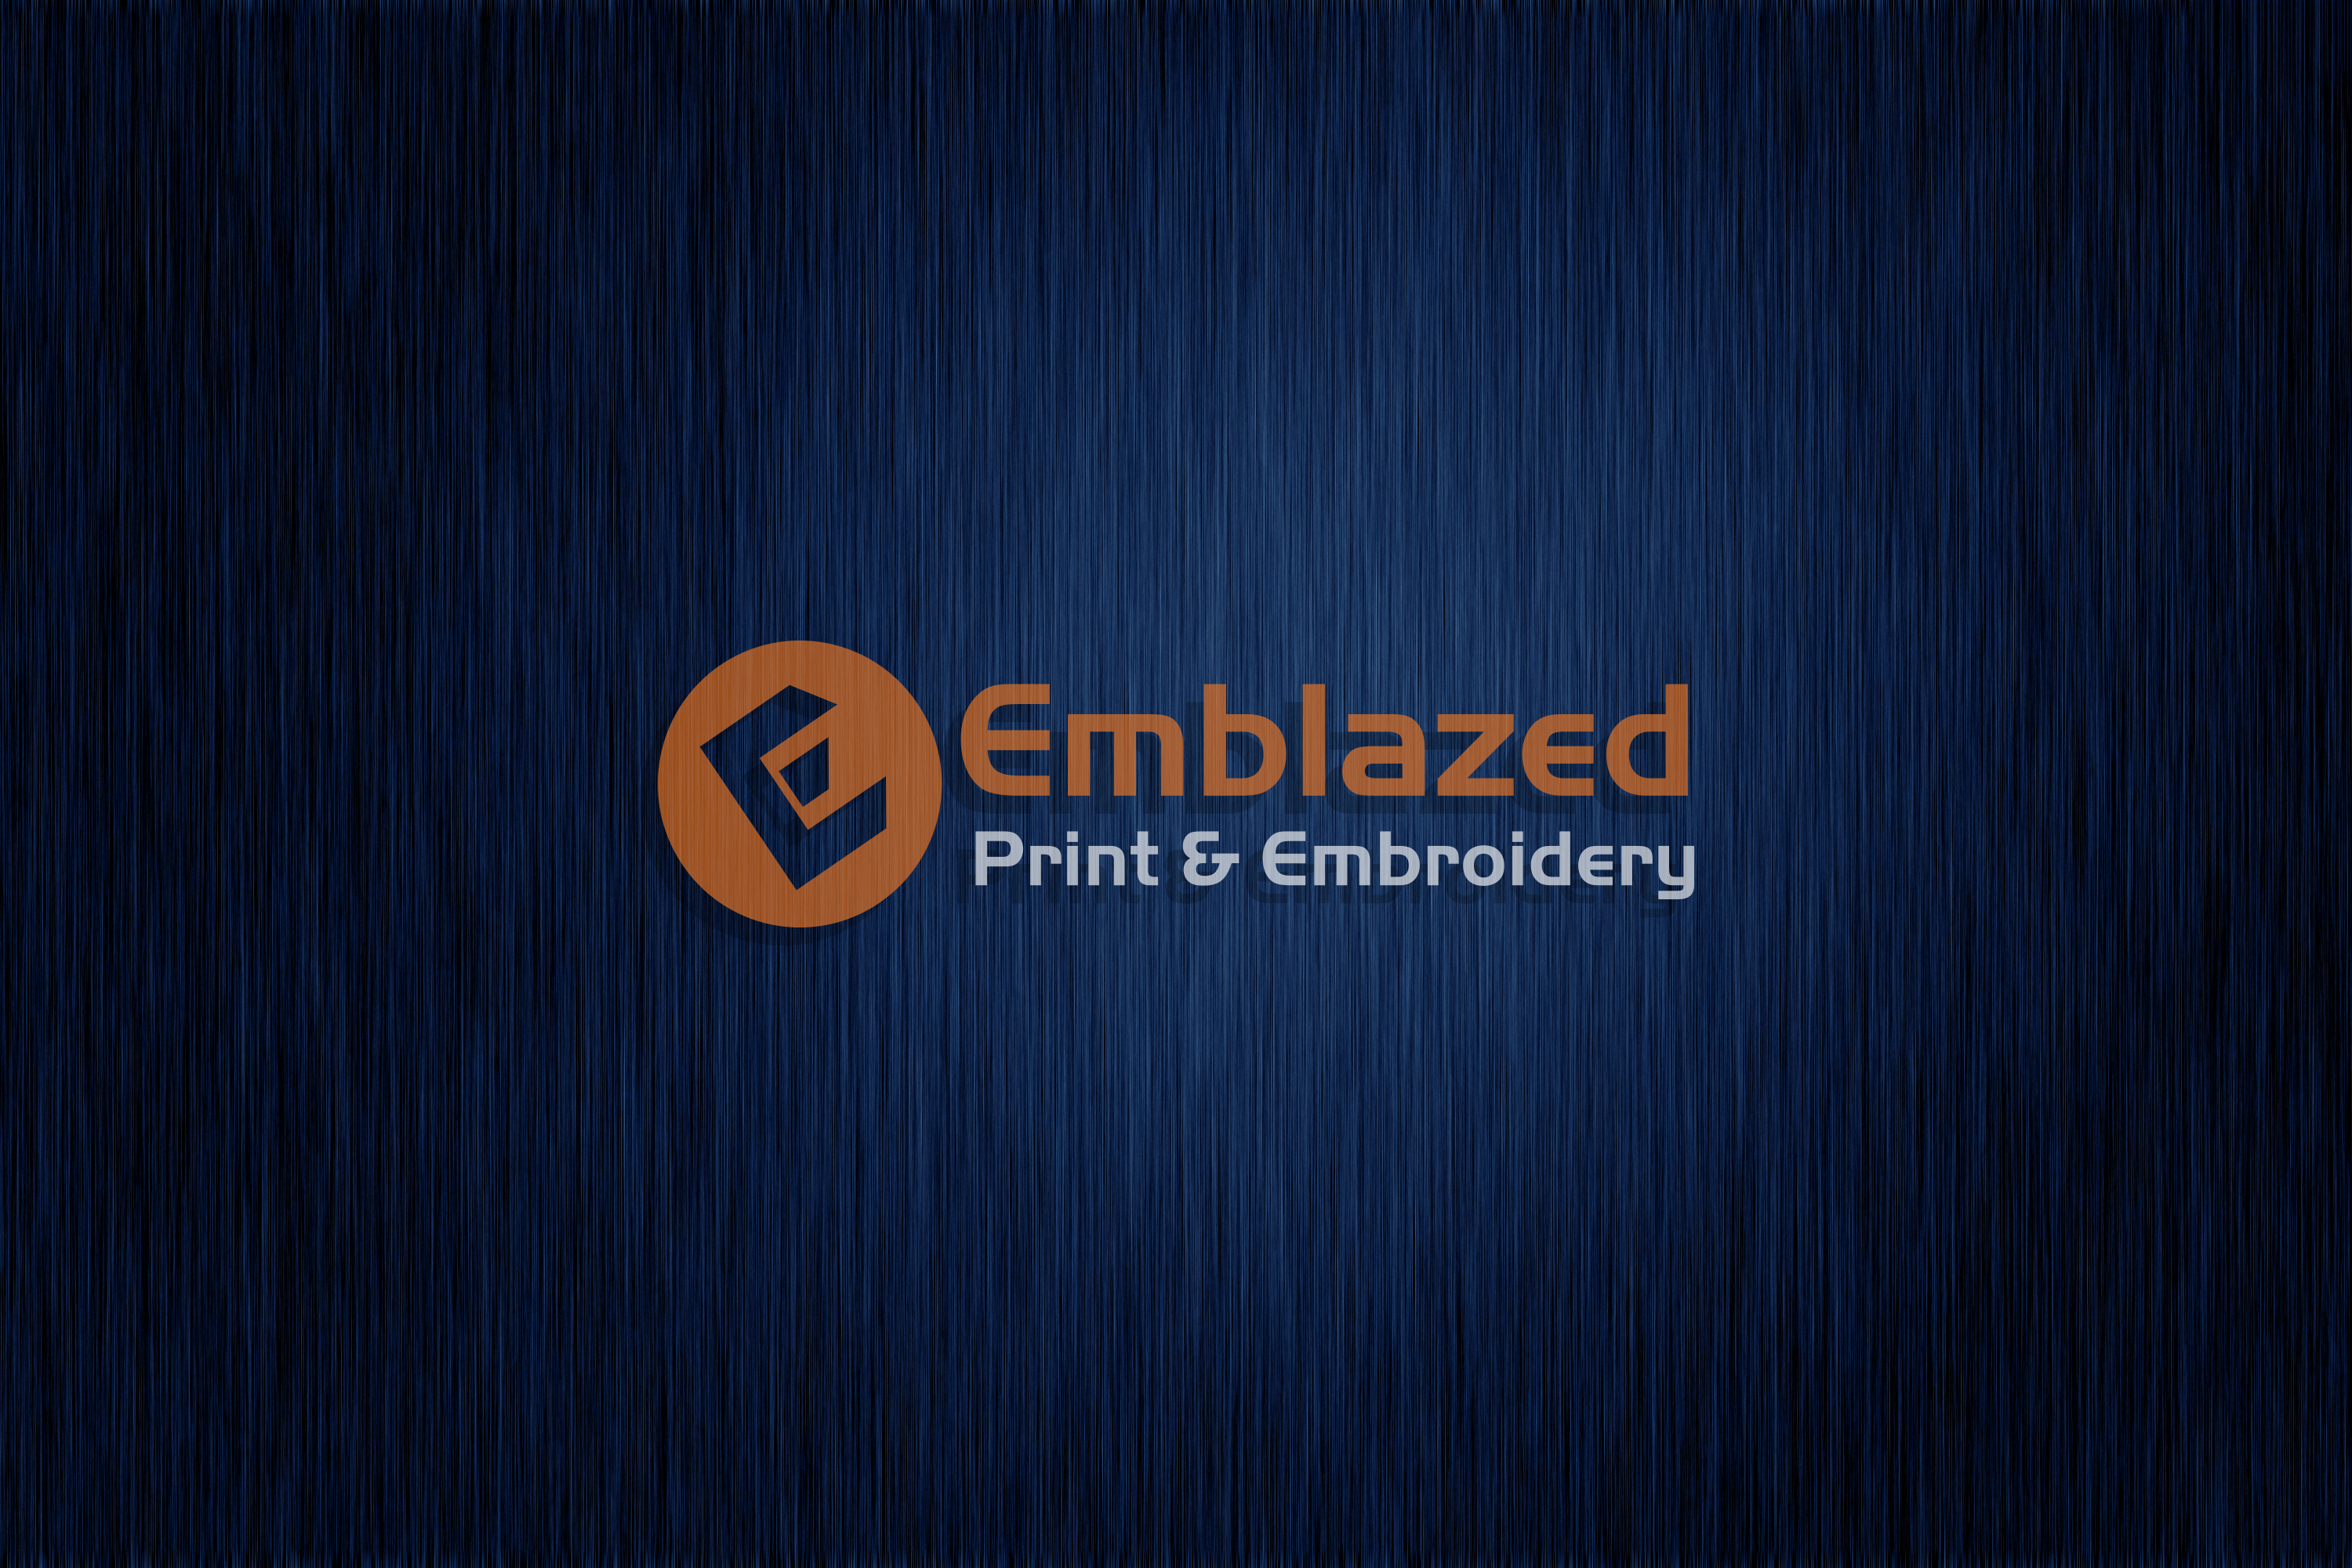 Emblazed Ltd